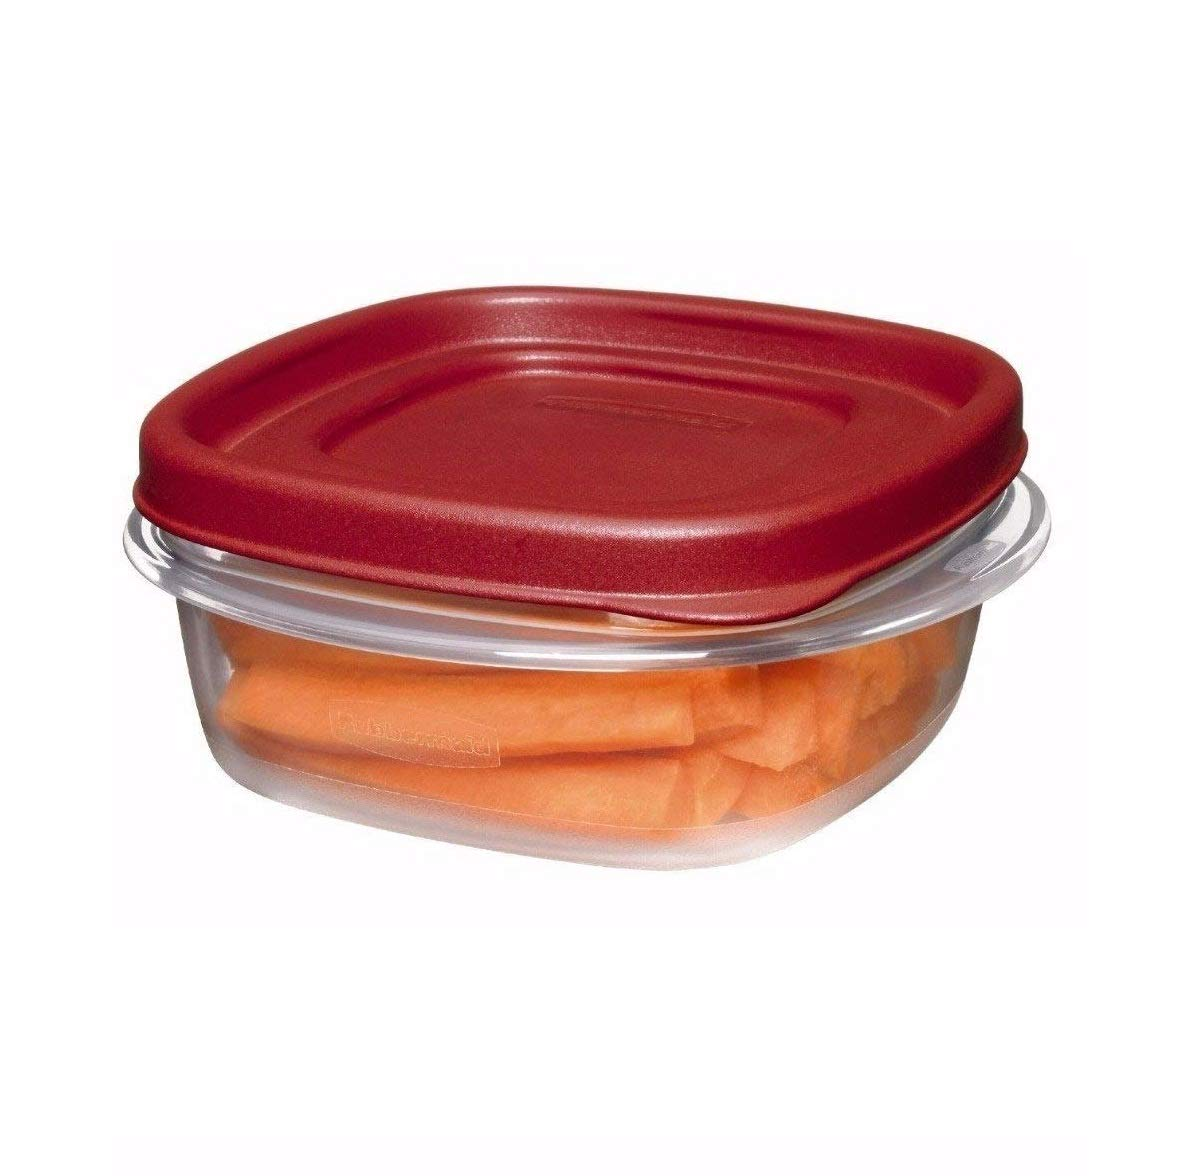 Rubbermaid COMIN18JU082133 669900229708 Easy Find Lid Square 1-1/4-Cup Food Storage Container, 12-Pack, Red, Clear by Rubbermaid